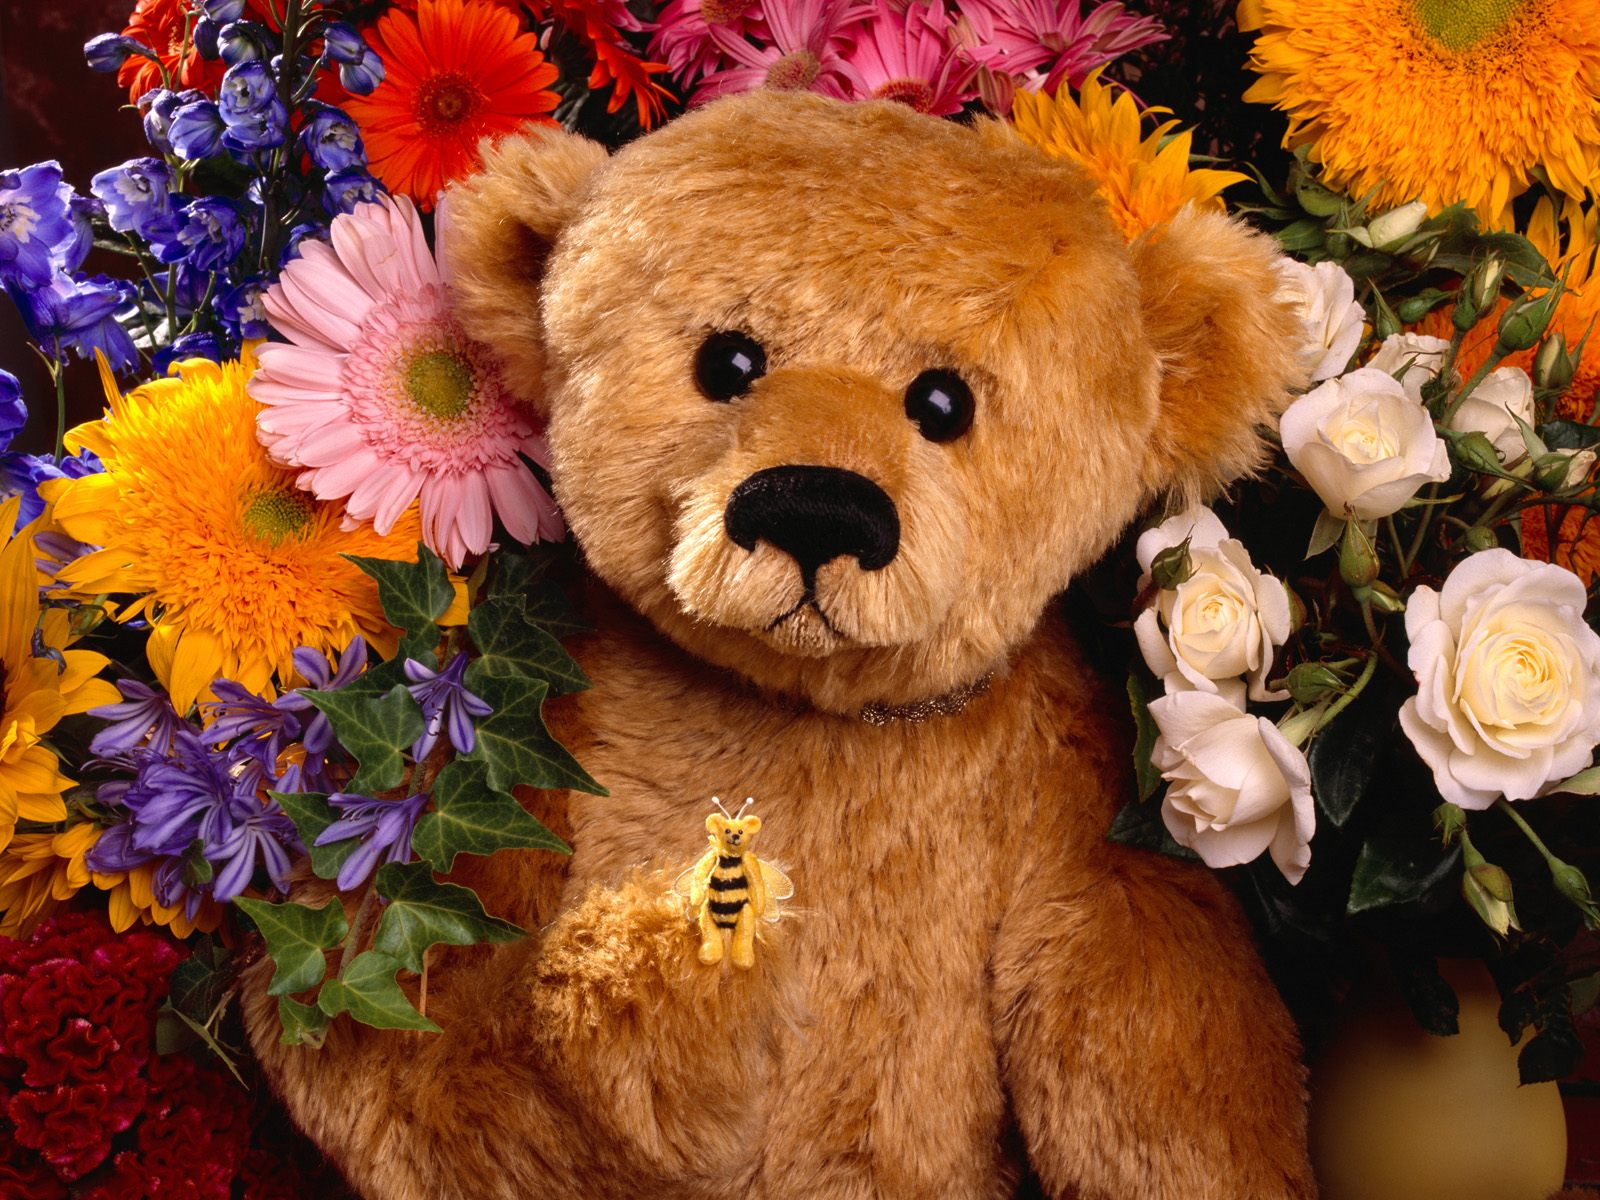 Animal - Bear  - Teddy Bear - Flowers Wallpaper